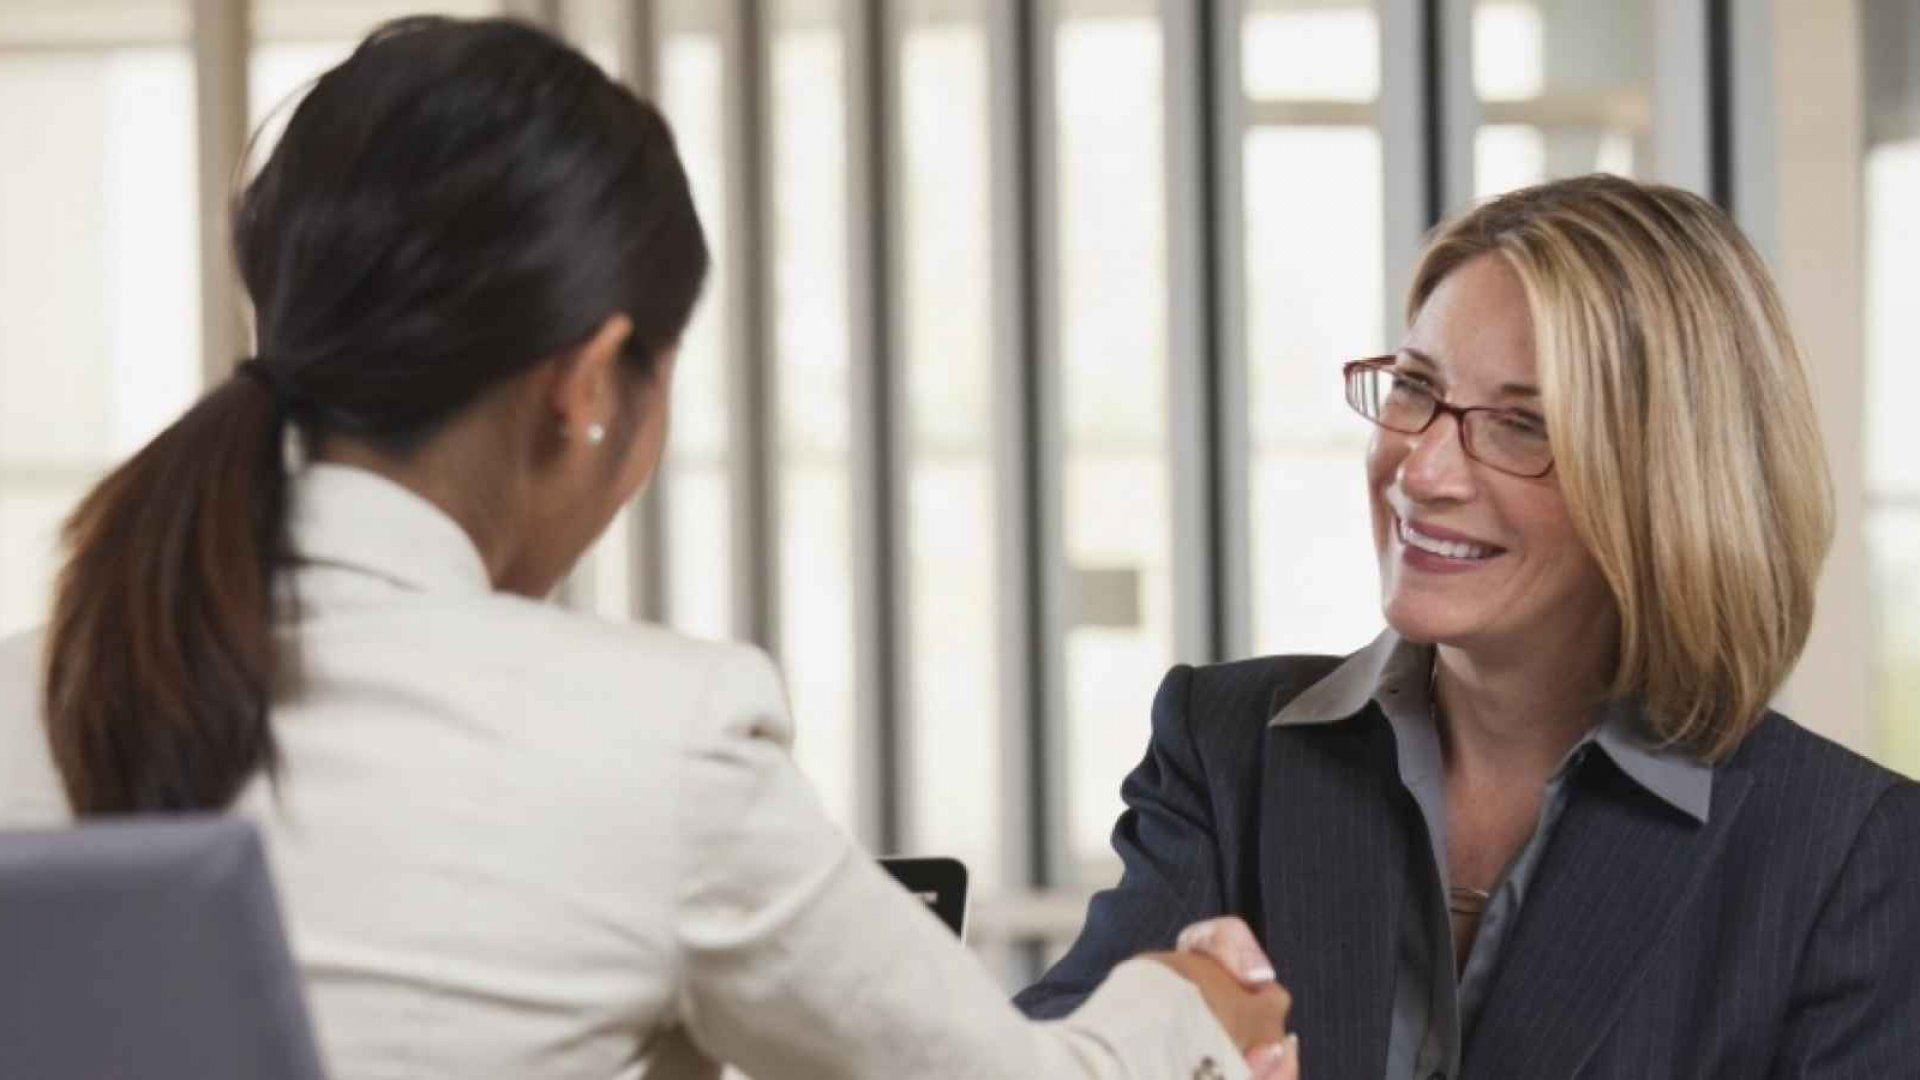 6 Steps to Hiring (and Retaining) Great Employees